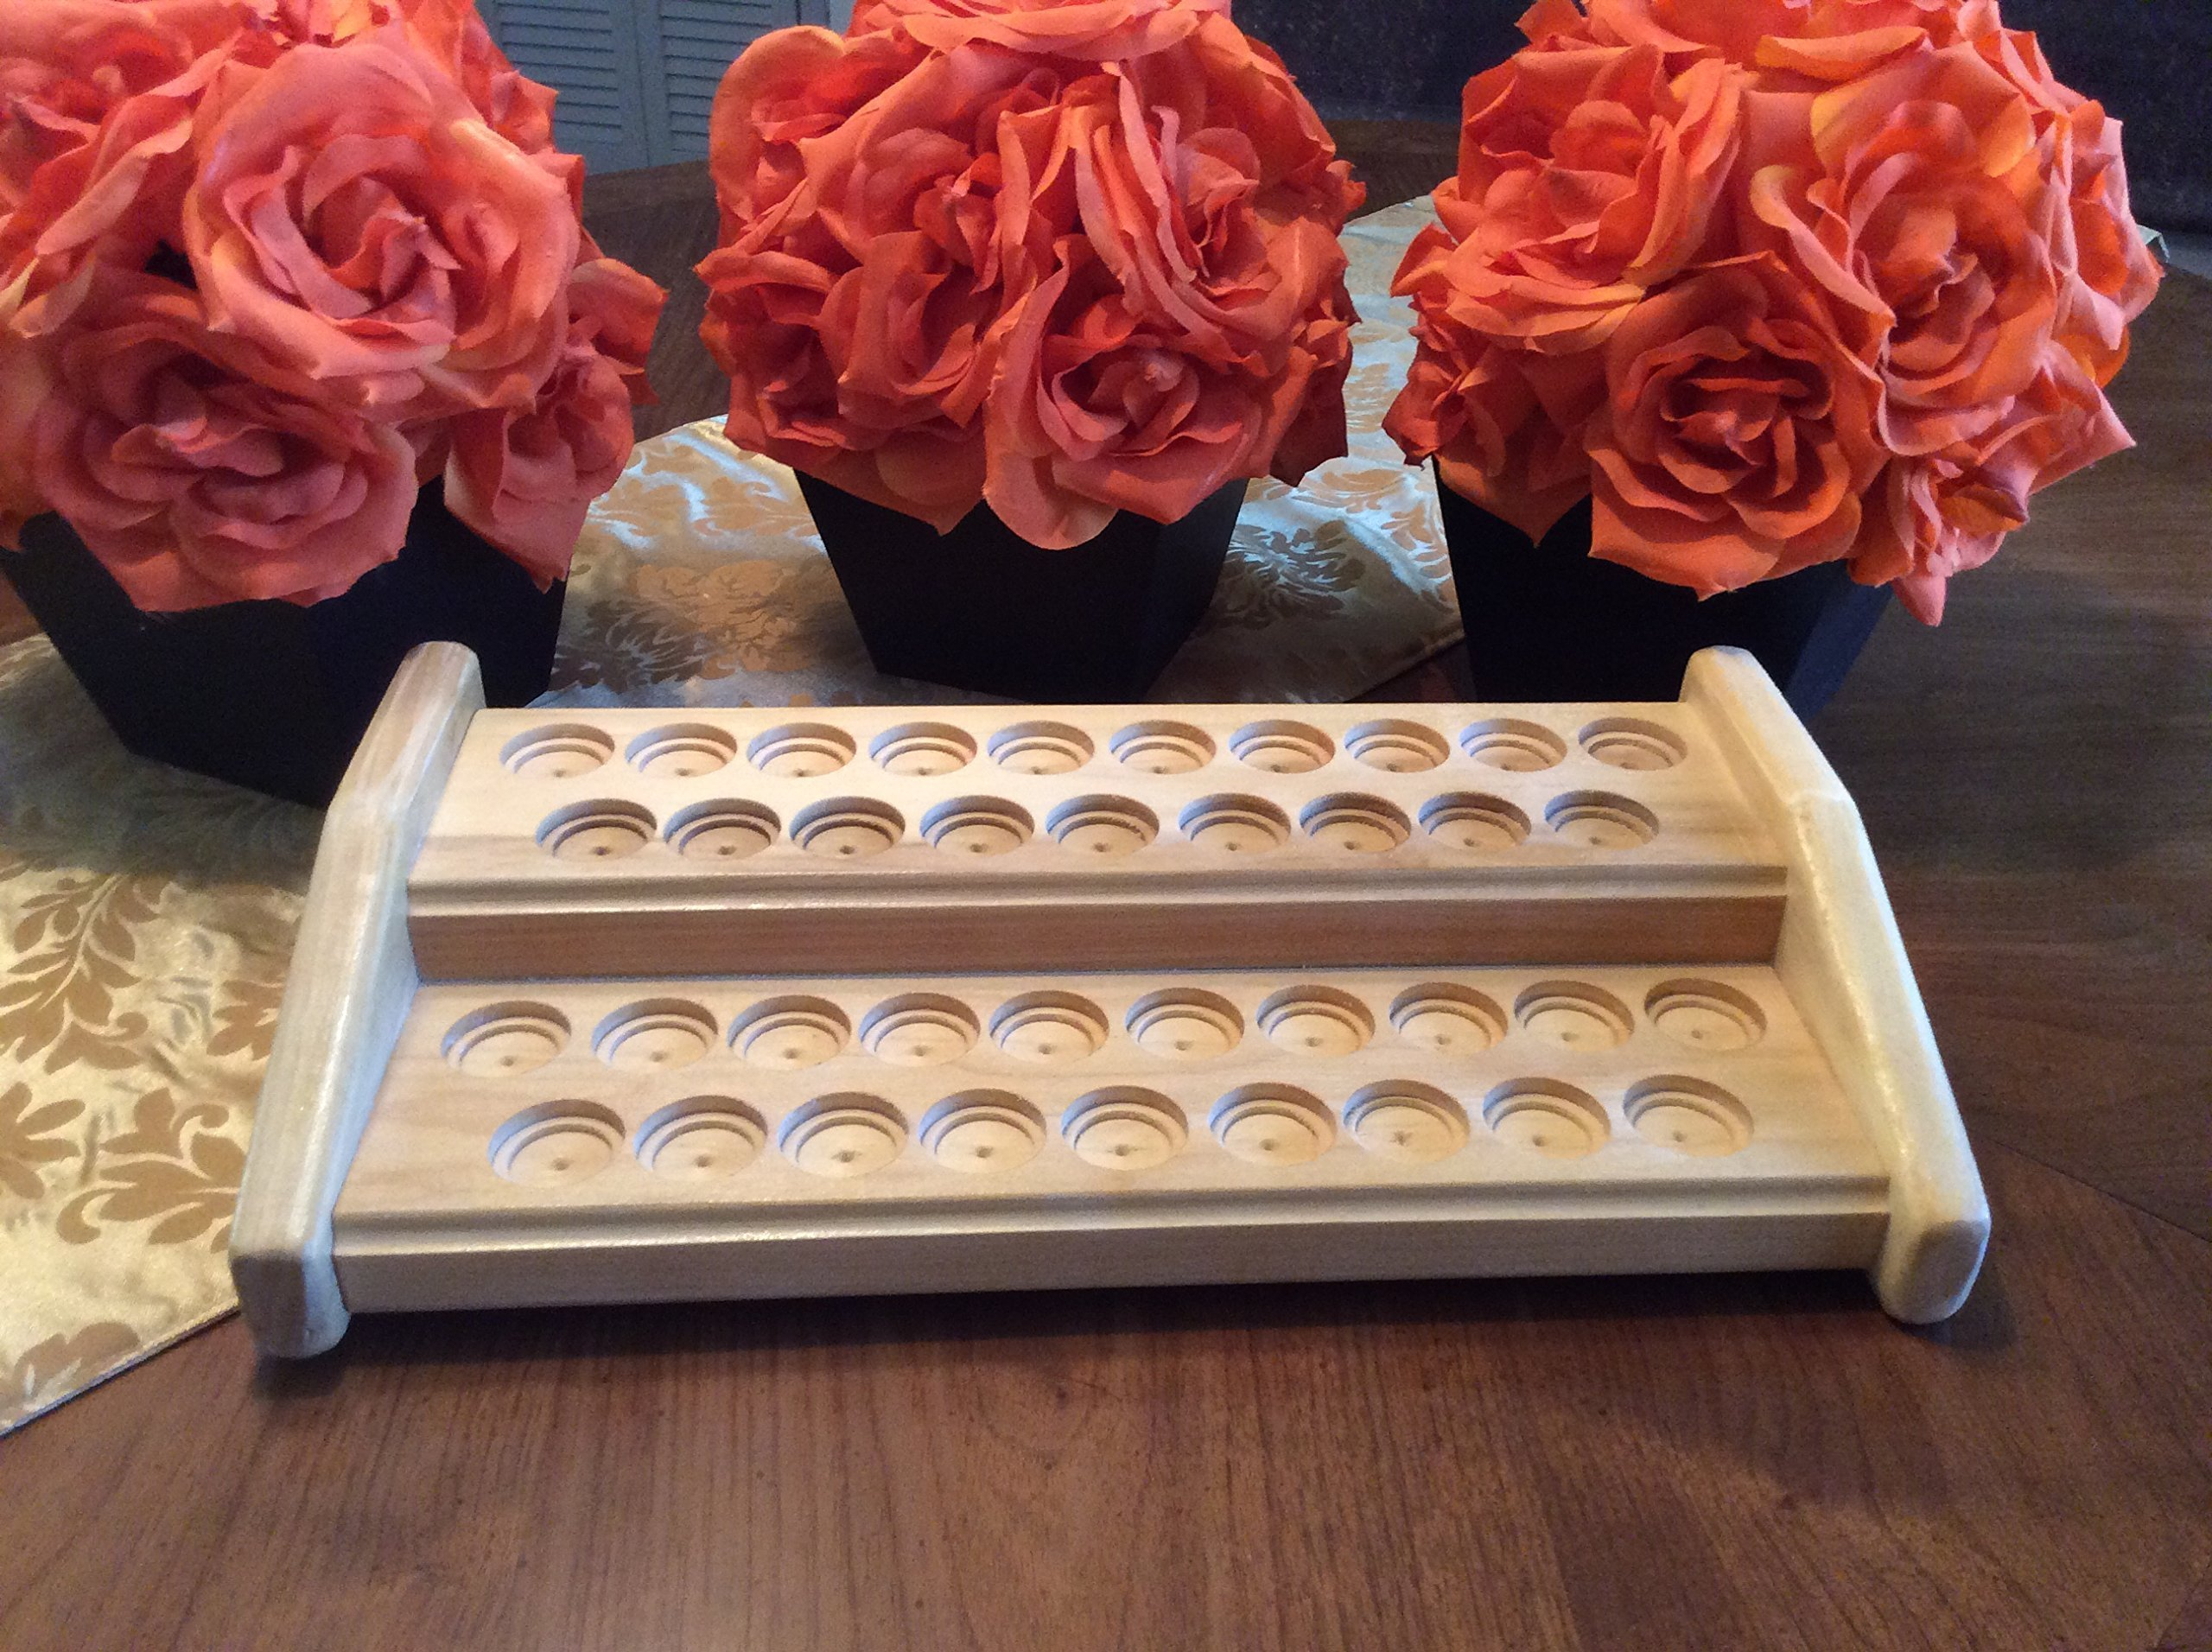 Essential oil rack / bottle holder, wood oils organizer, storage stand for 38 EO bottles, 5ml or 15ml oils display, 4 colors available!